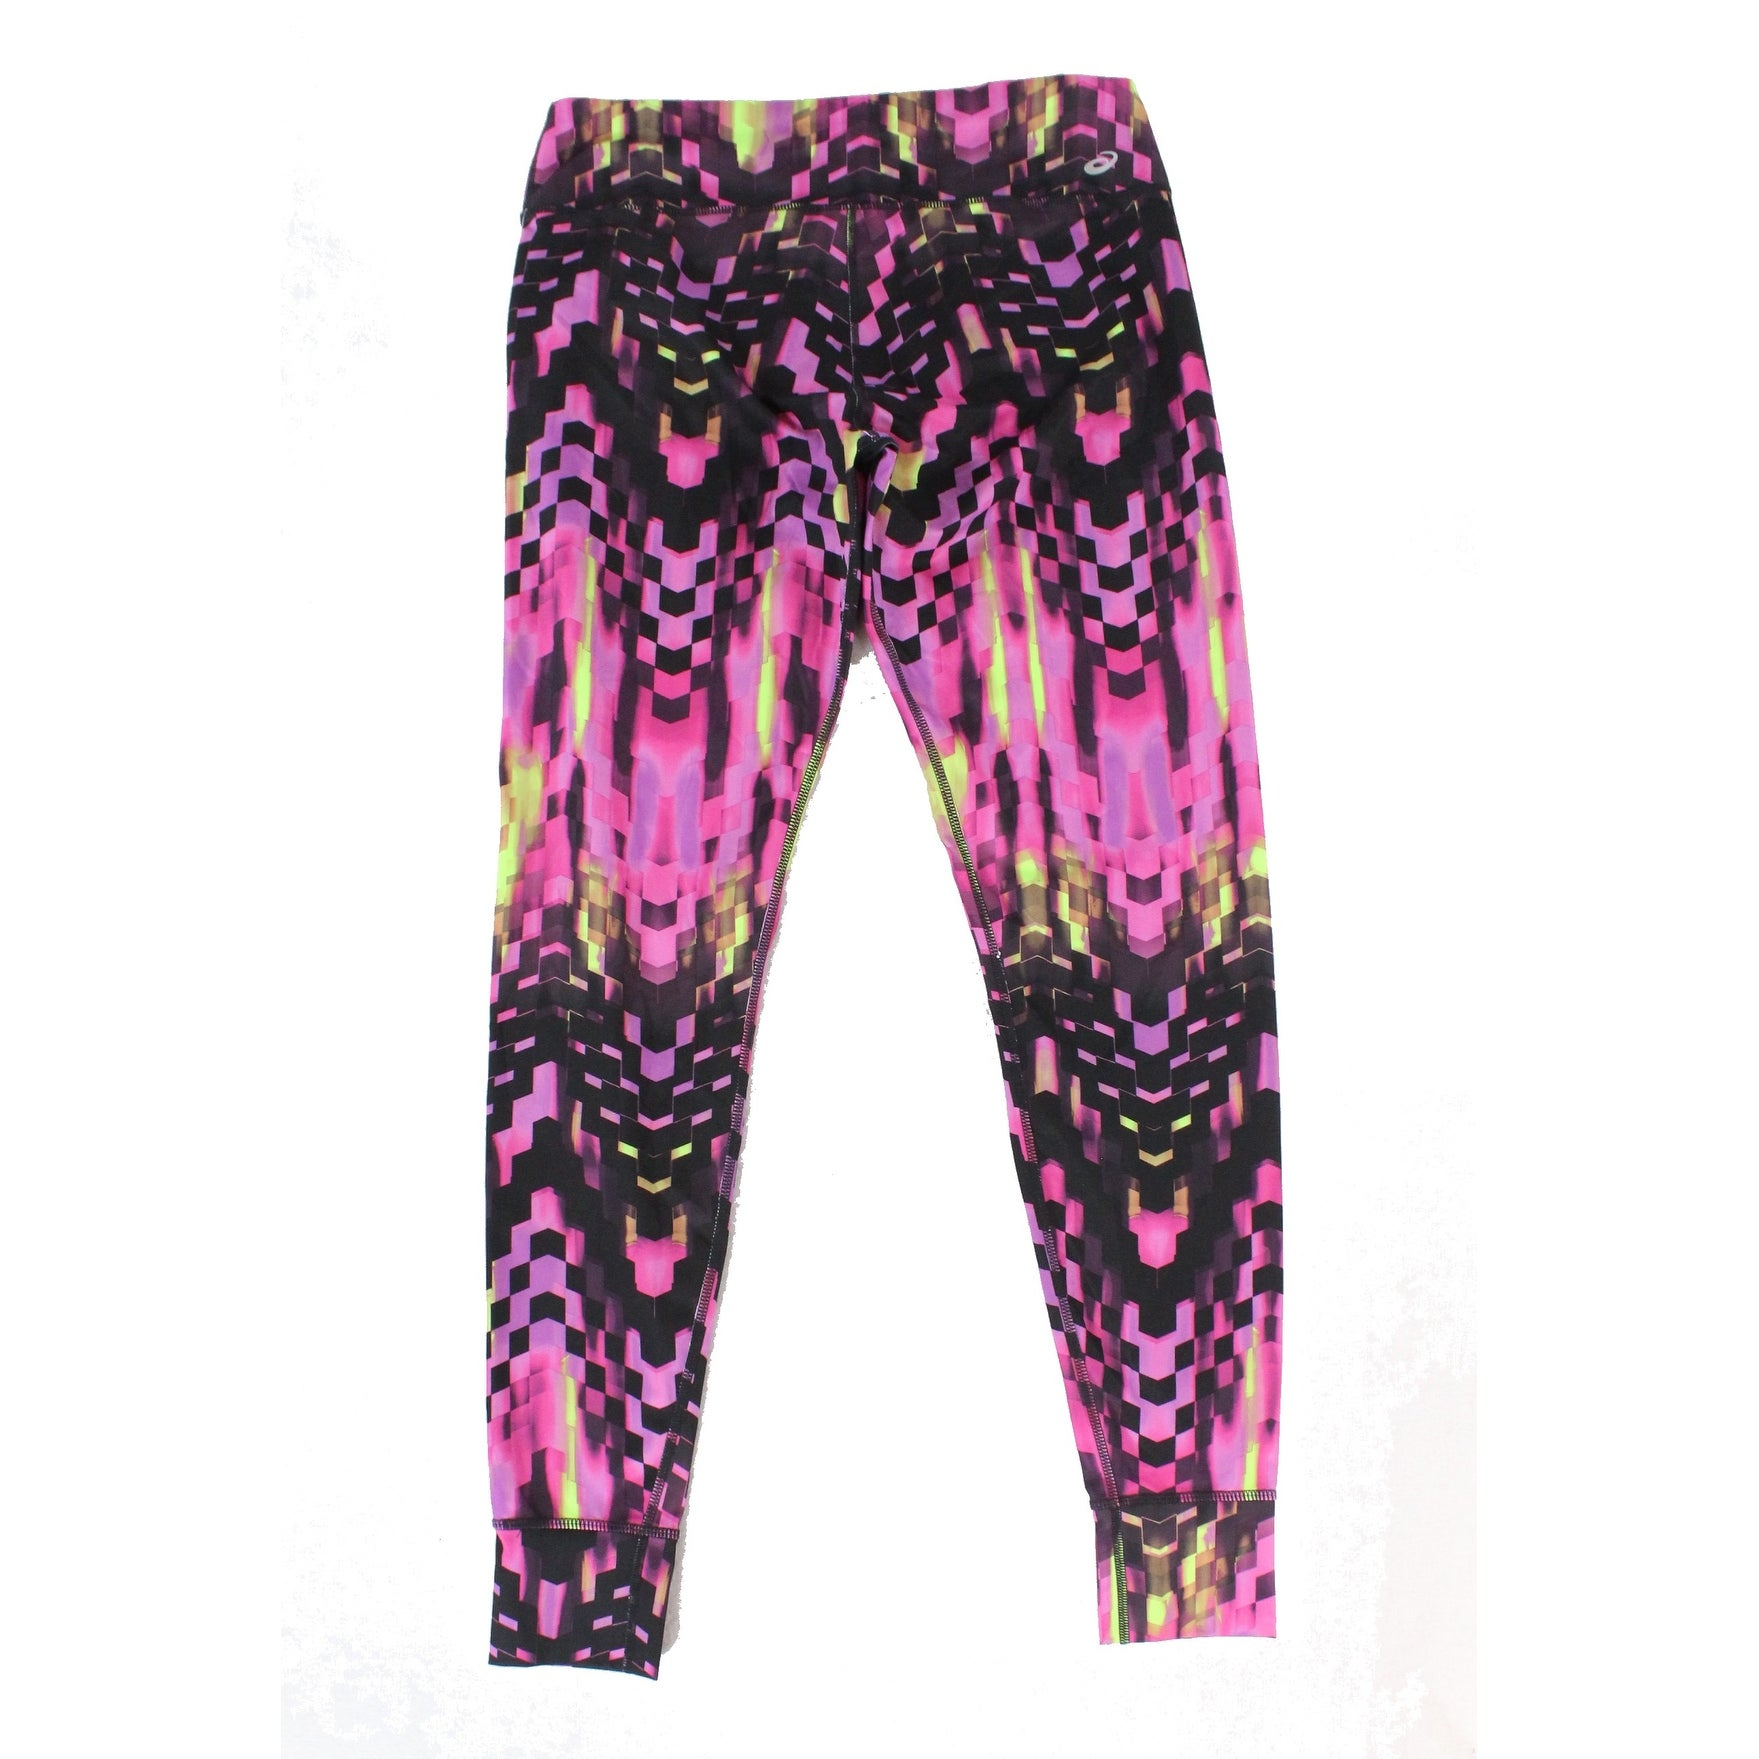 7d025be86f42 Shop Asics Purple Women s Size Large L Leggings Geo Checkered Pants - On  Sale - Free Shipping On Orders Over  45 - Overstock.com - 21724087